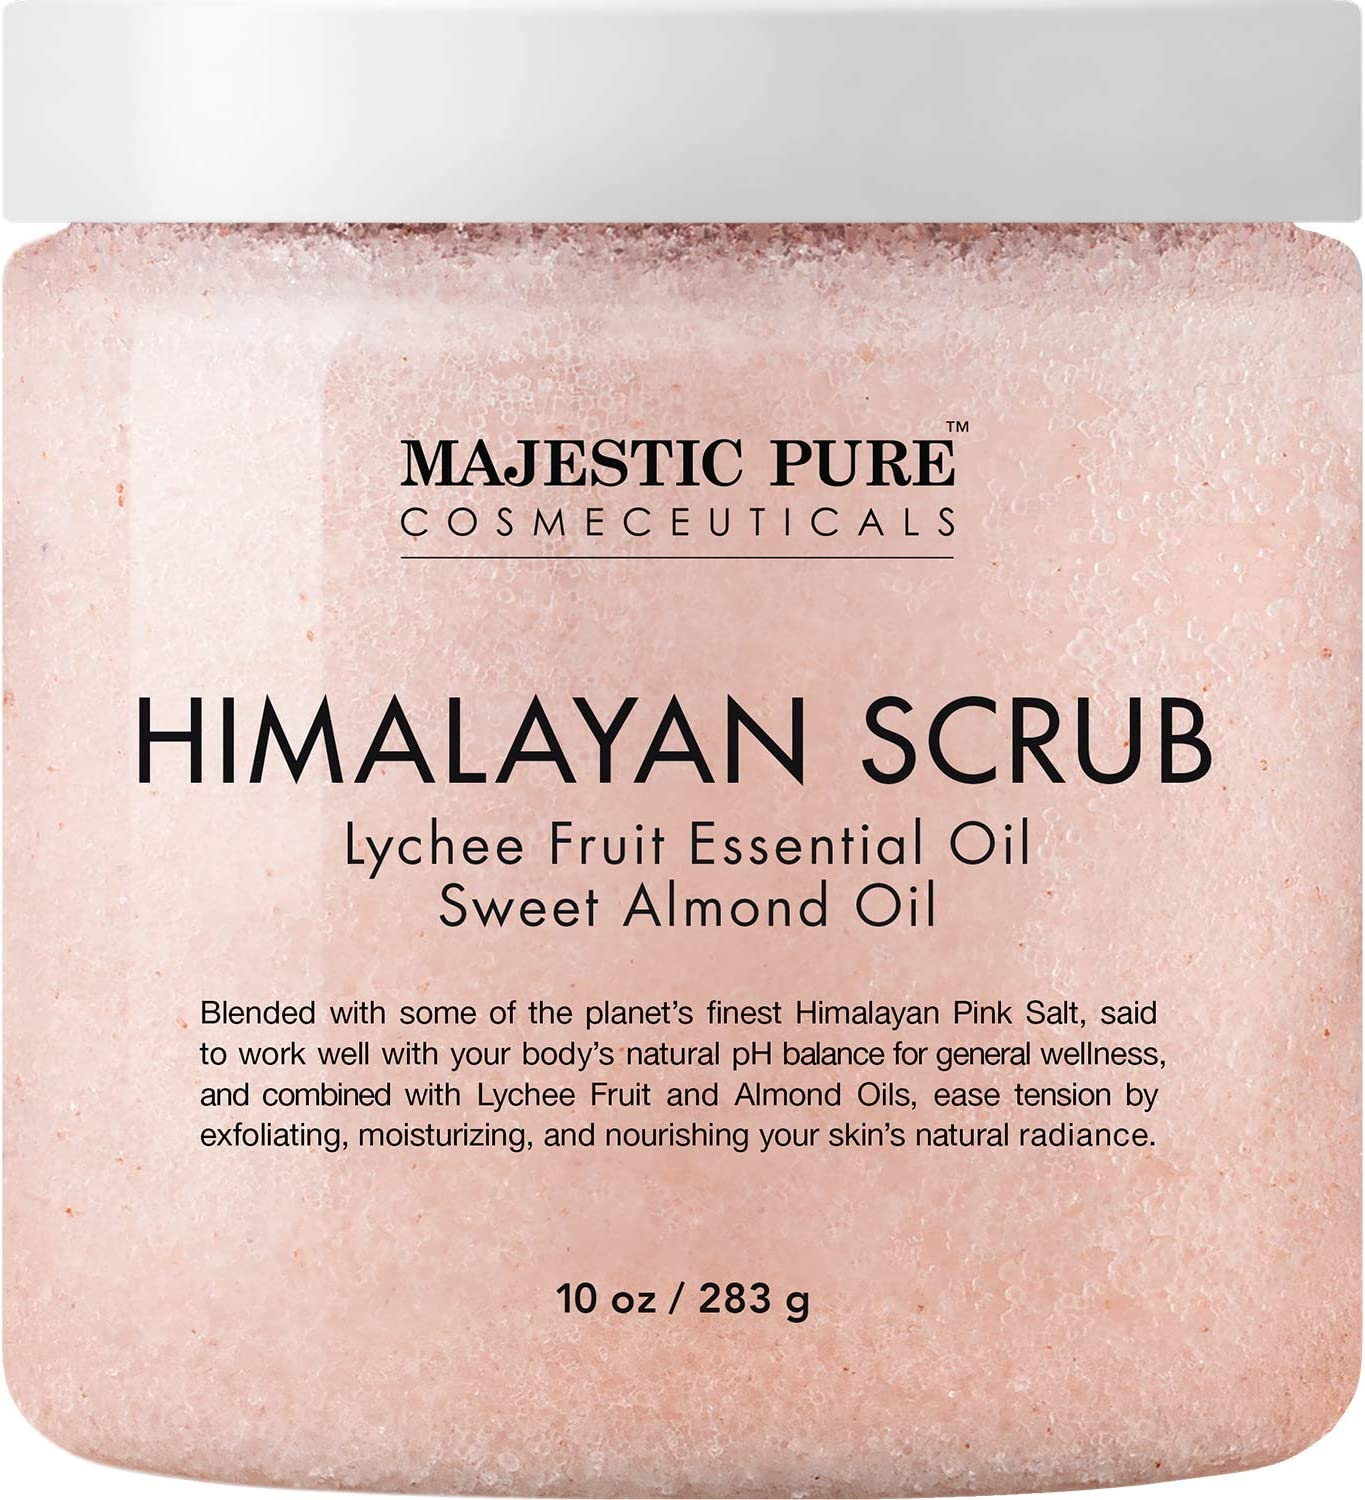 Majestic+Pure Himalayan All Natural Scrub with Lychee Fruit Essential Oil, Sweet Almond Oils, 10 oz Body Scrubs at amazon